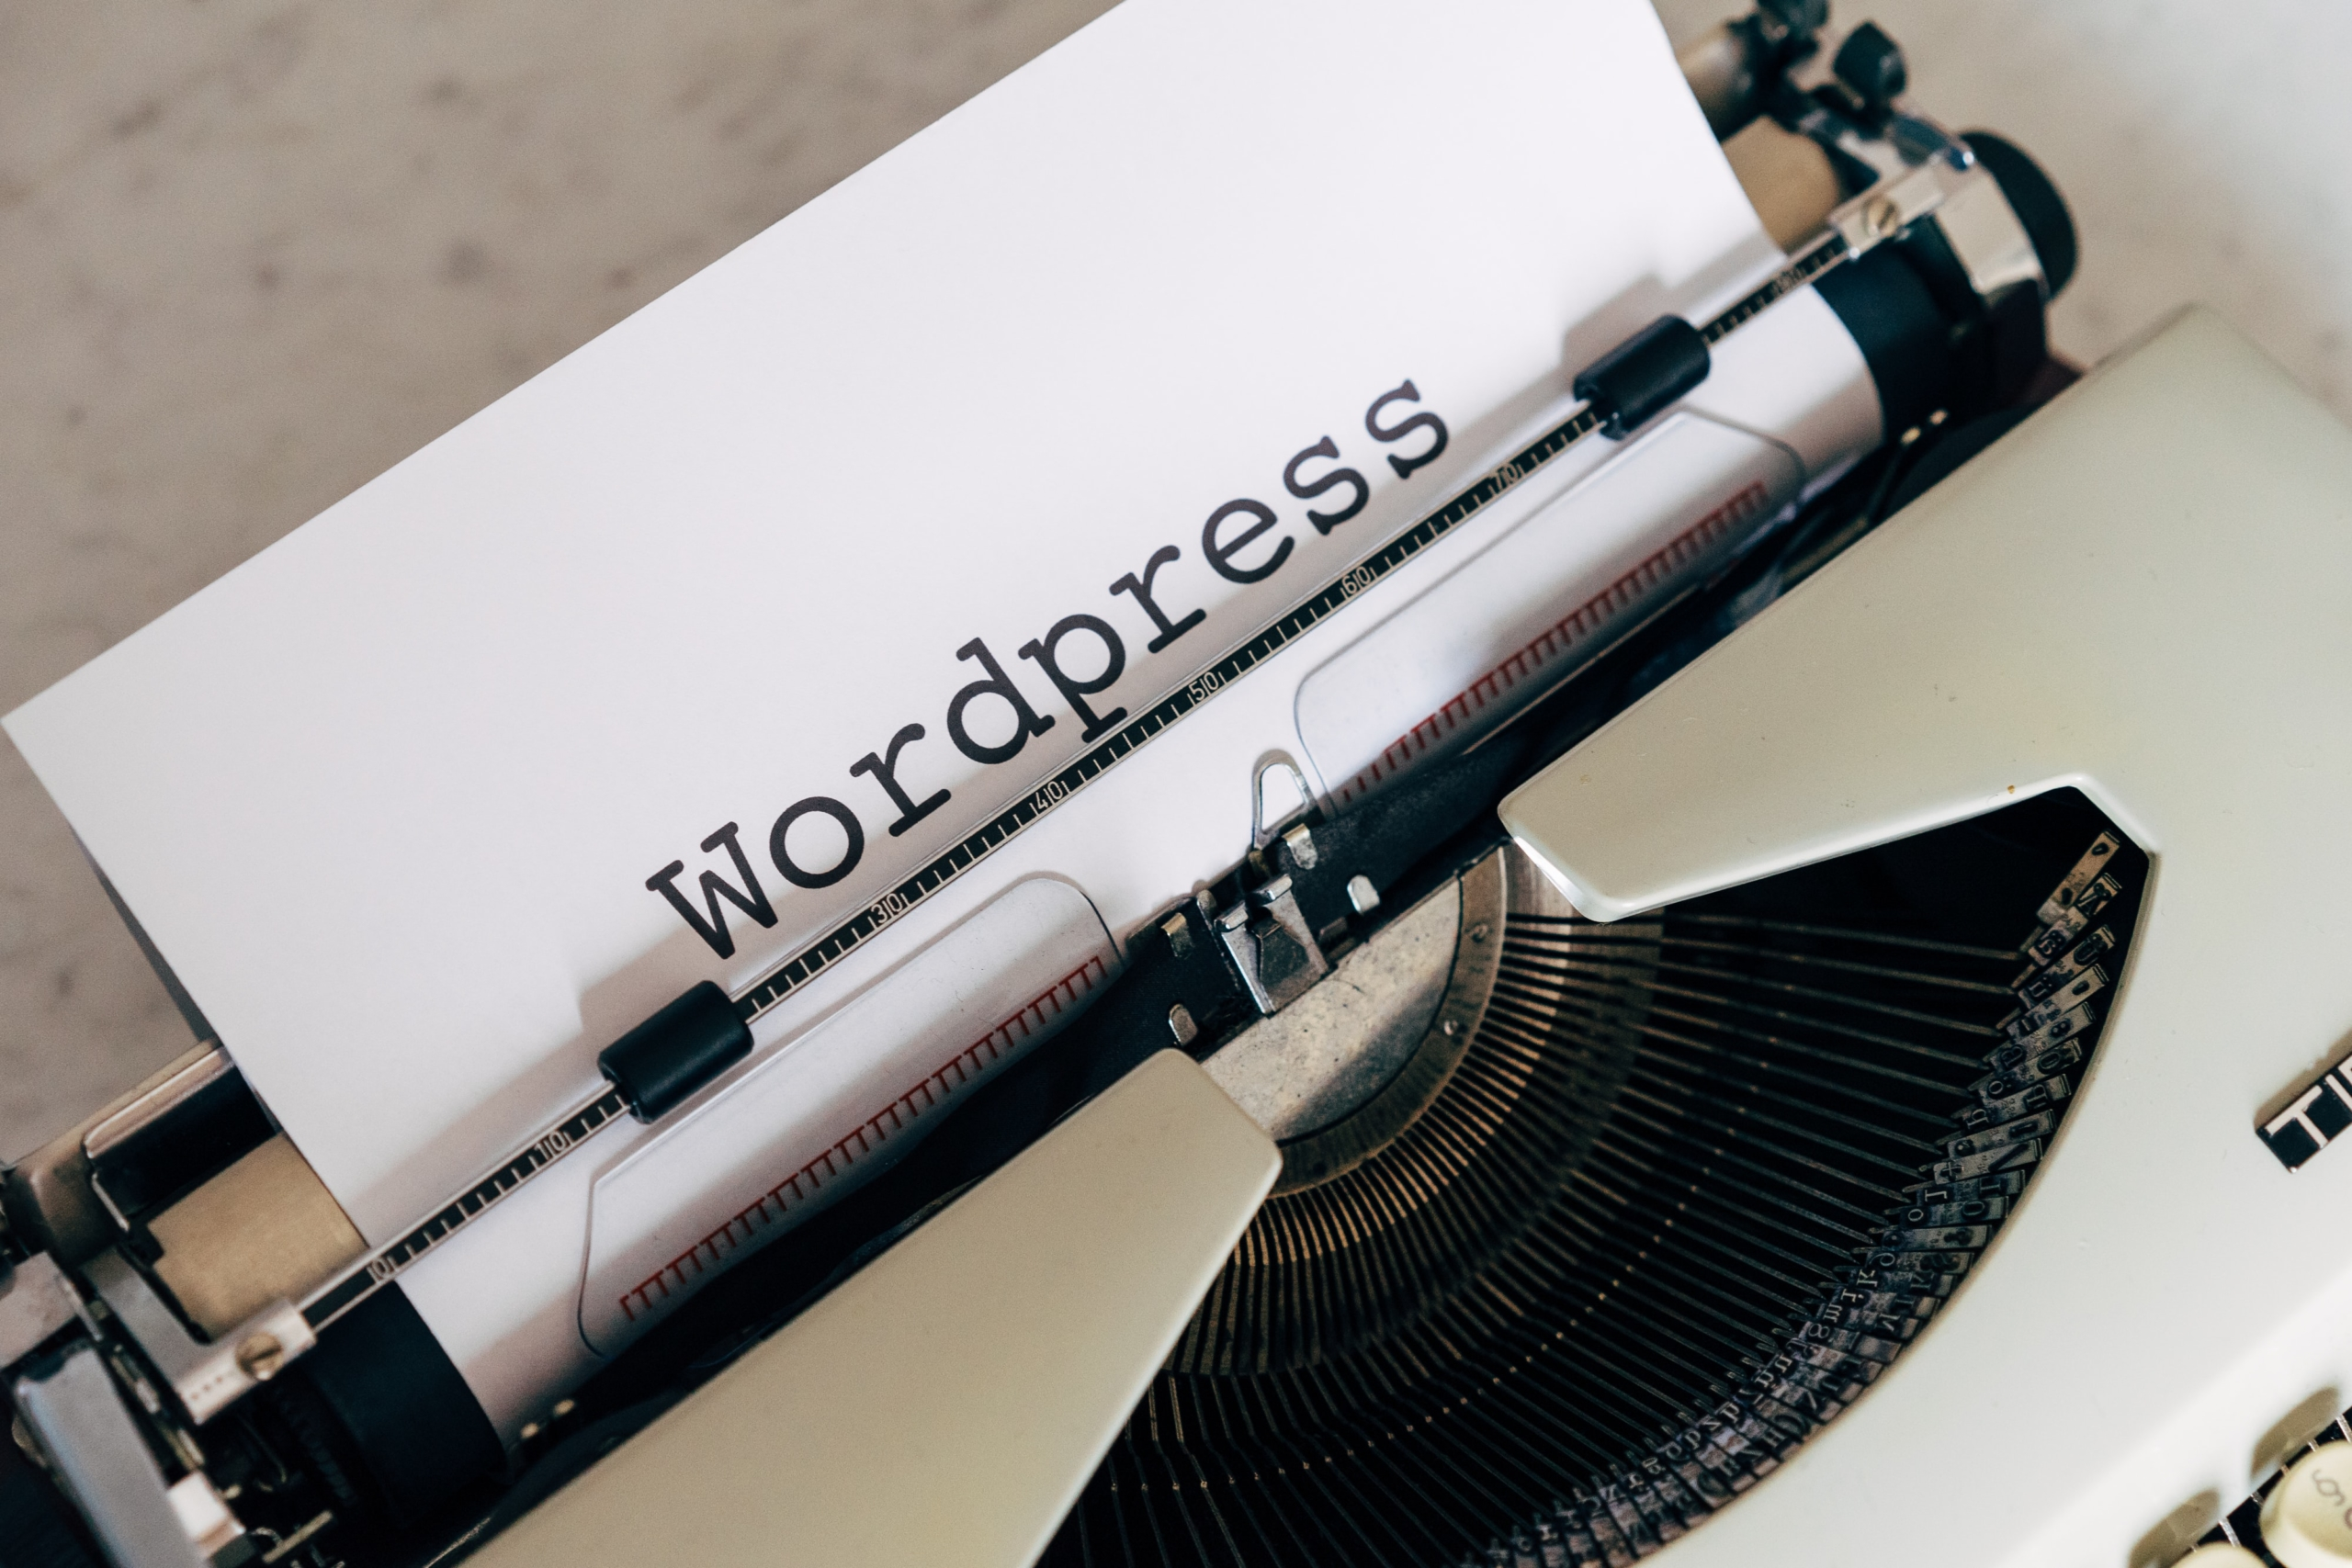 Wordpress written on paper on typewriter